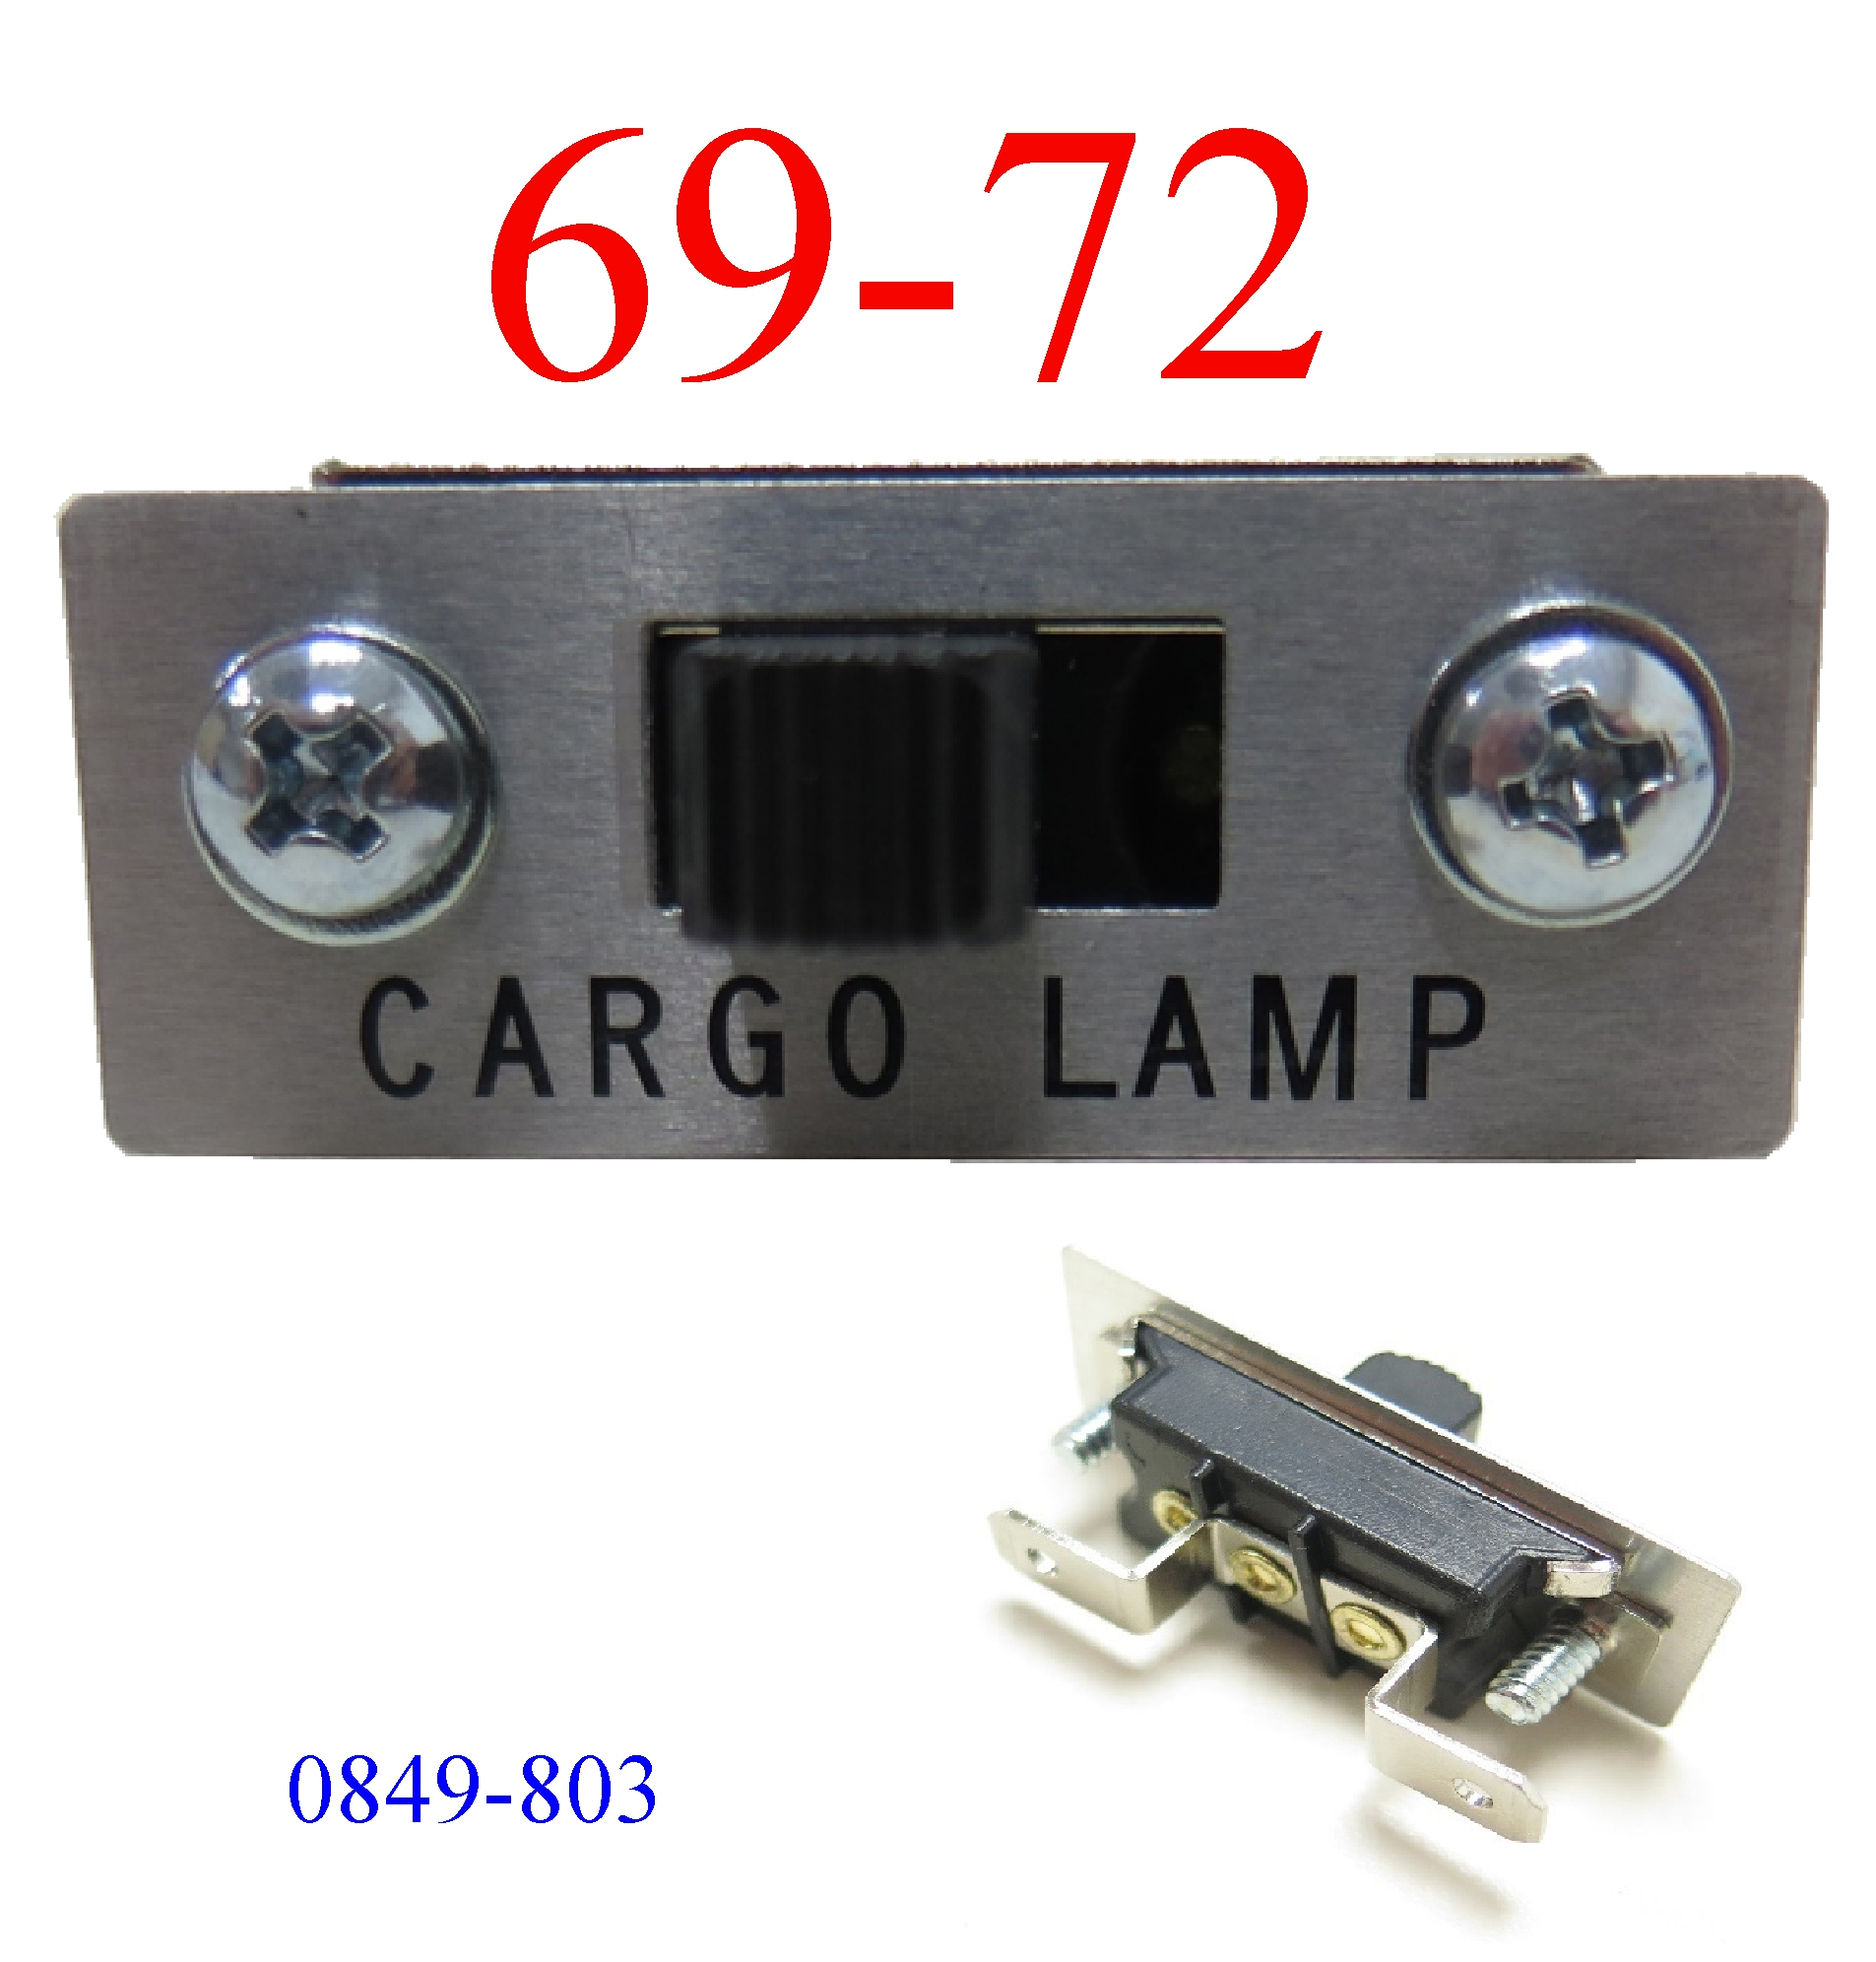 69-72 Chevy Truck Cargo Lamp Switch